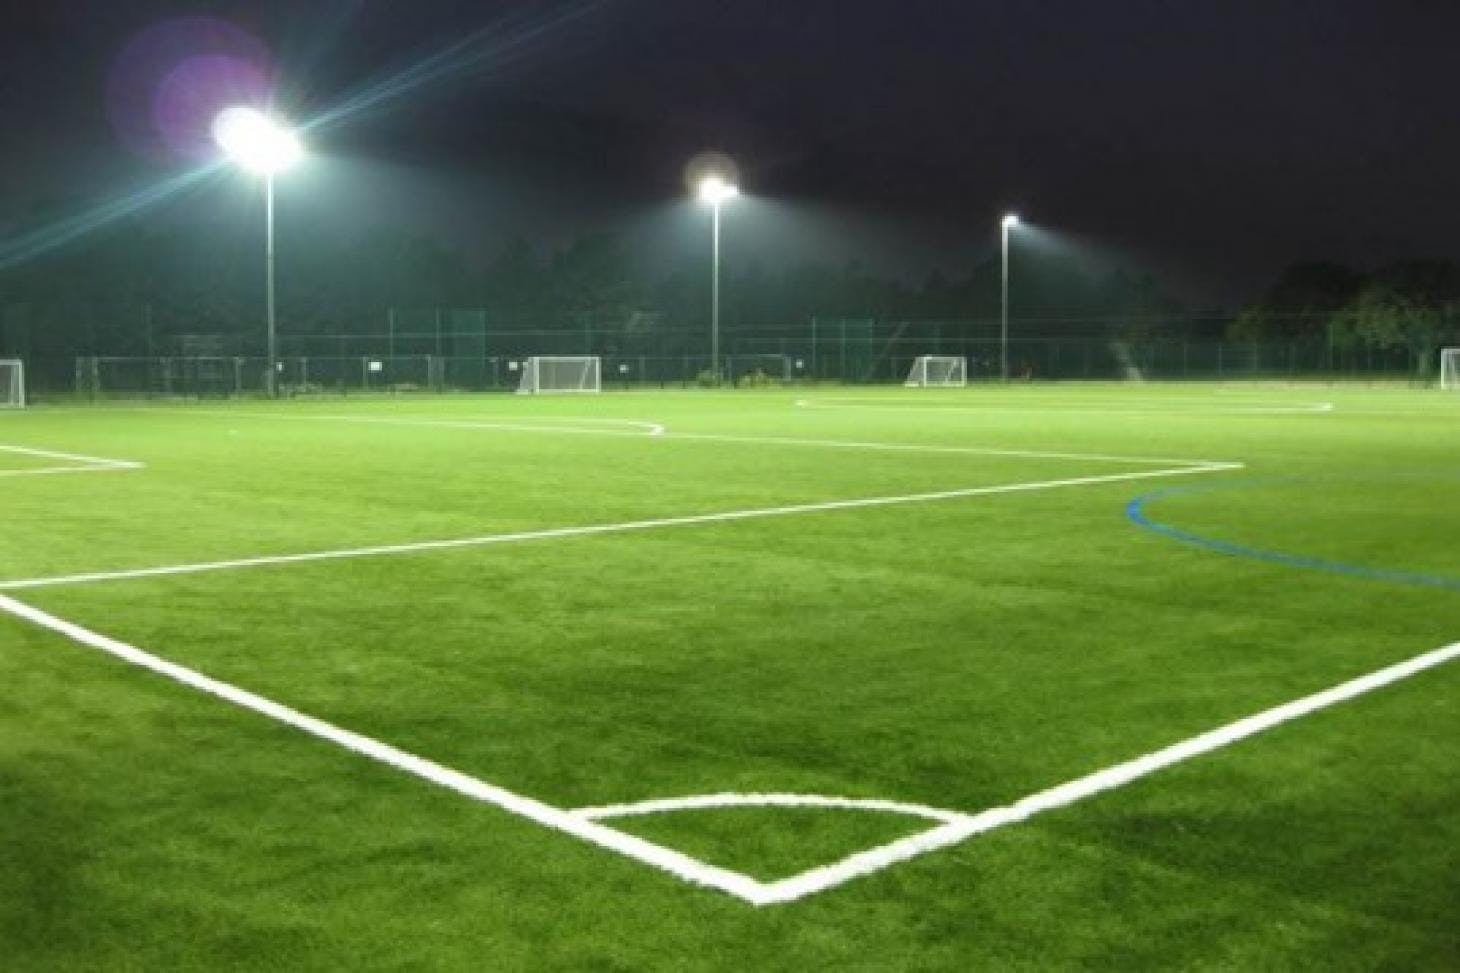 The Priory Link Leisure Centre 11 a side | 3G Astroturf football pitch